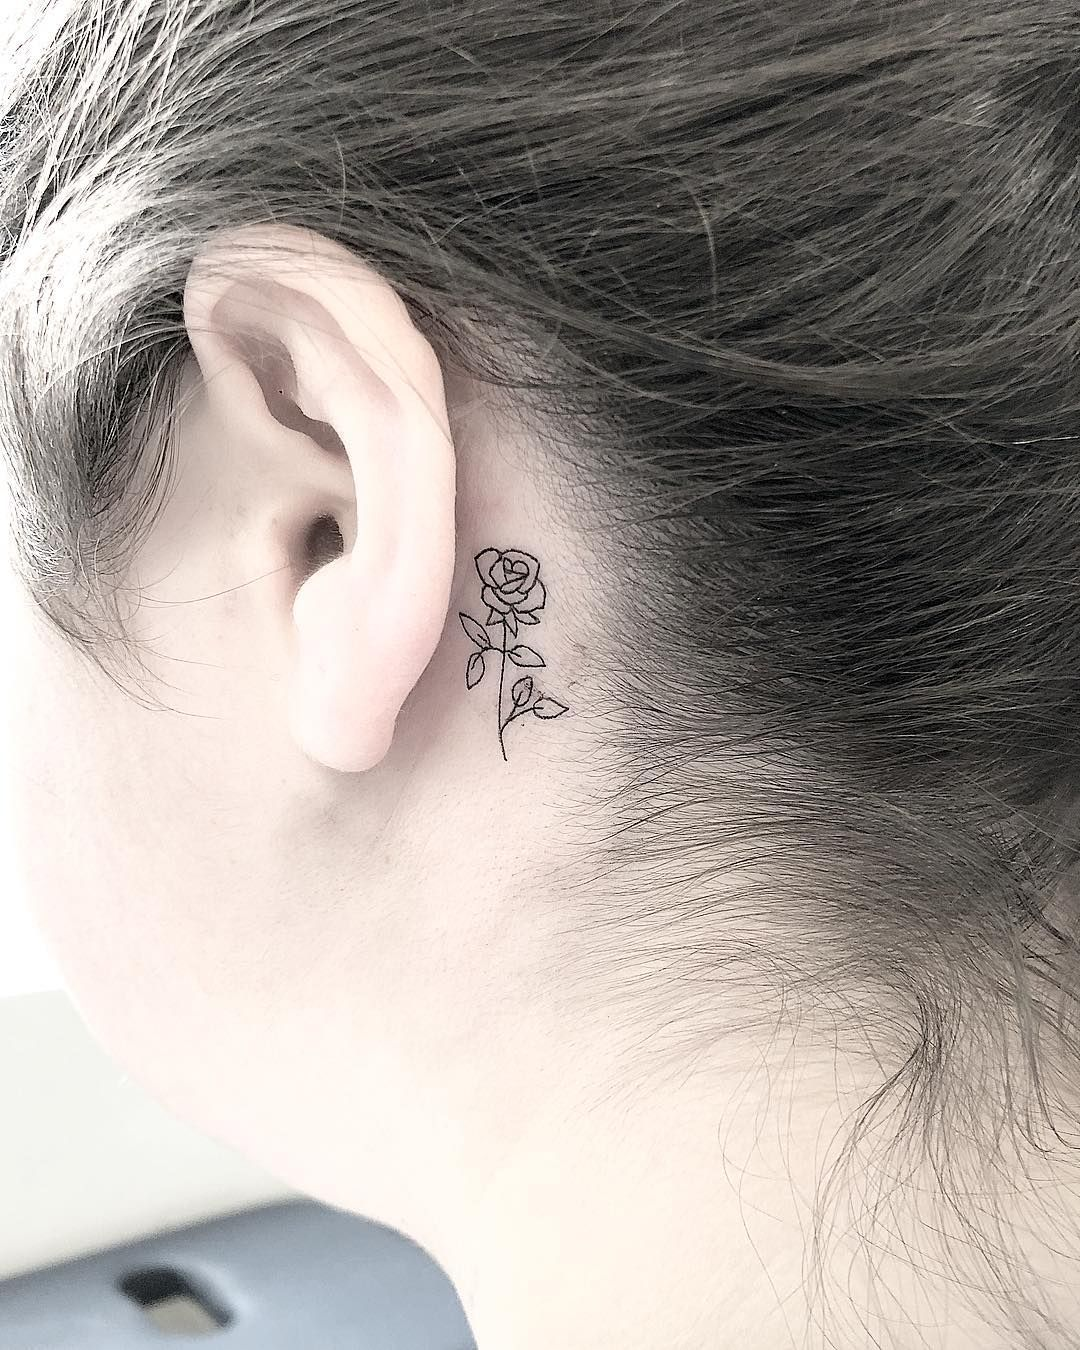 Small Rose Behind The Ear For Jessica Thanks For Coming In Behind Ear Tattoo Small Behind Ear Tattoos Rose Tattoo Behind Ear